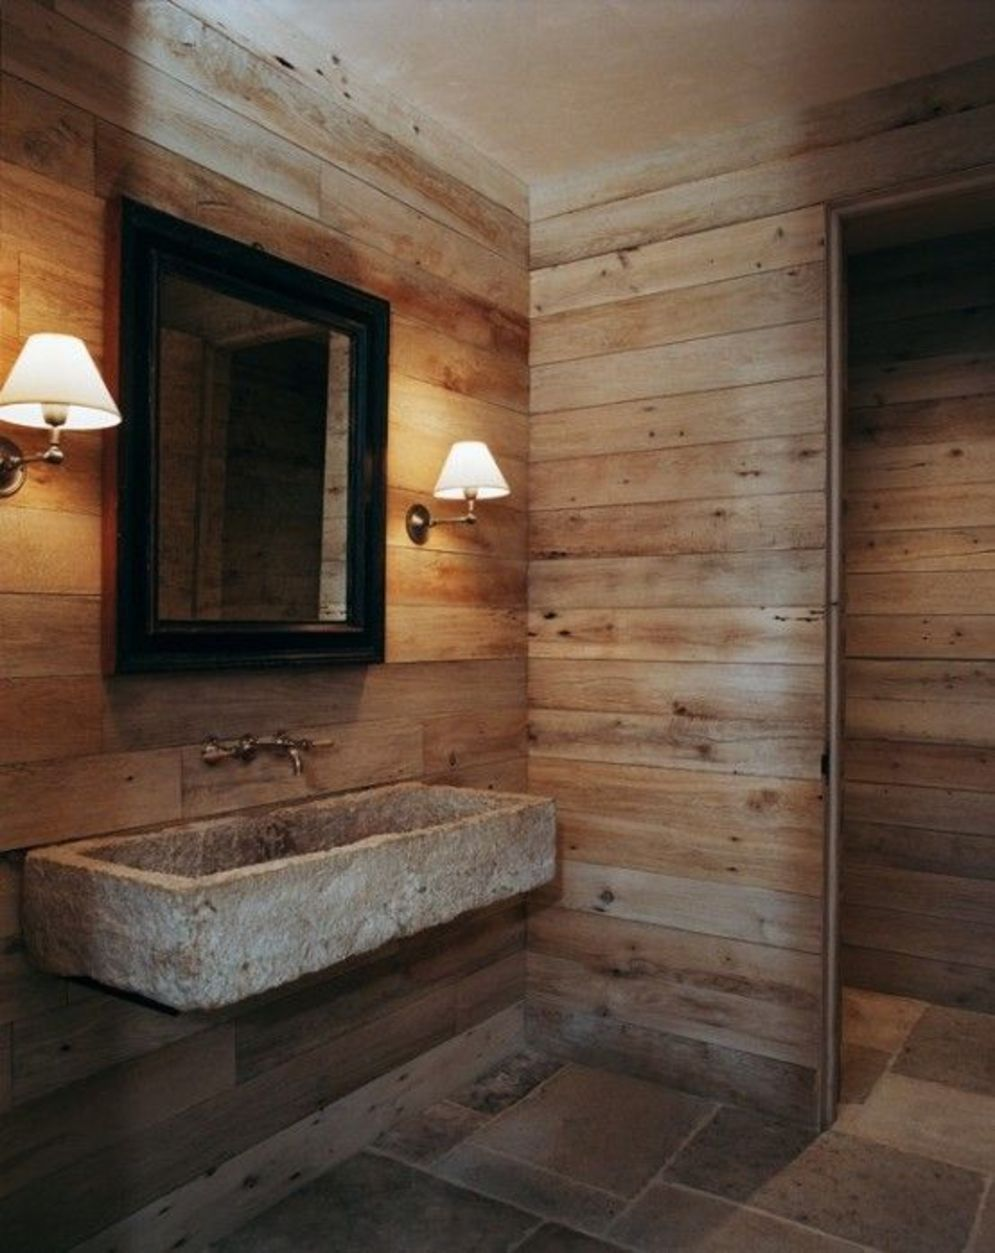 Timeless bathroom designs with wood accents enhancing more natural vibes Image 26